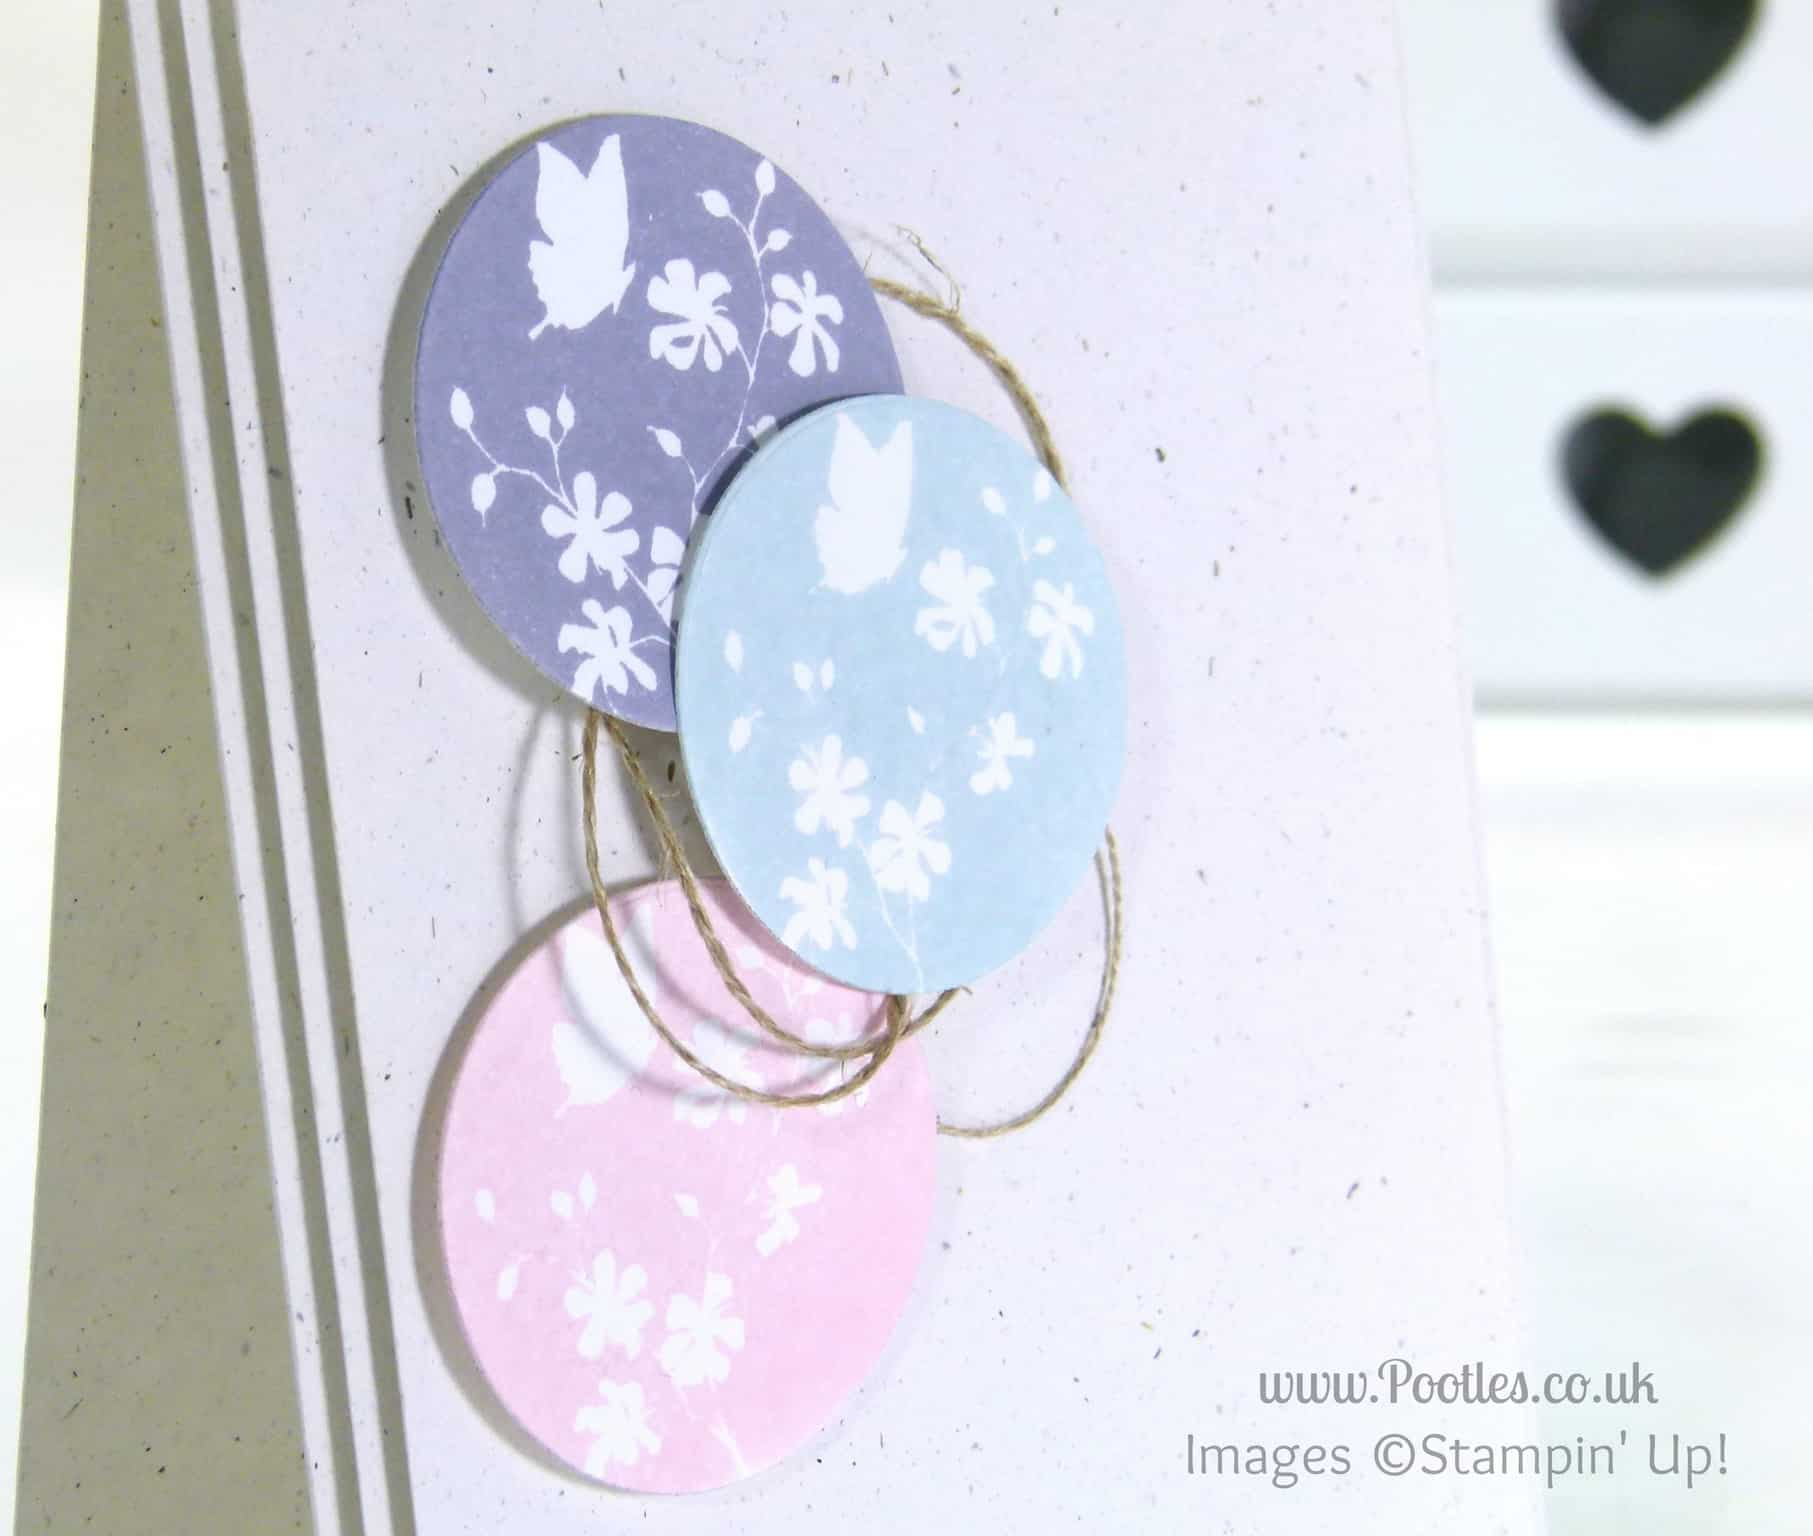 Soft Subtle Cards using Stampin' Up! Serene Silhouettes